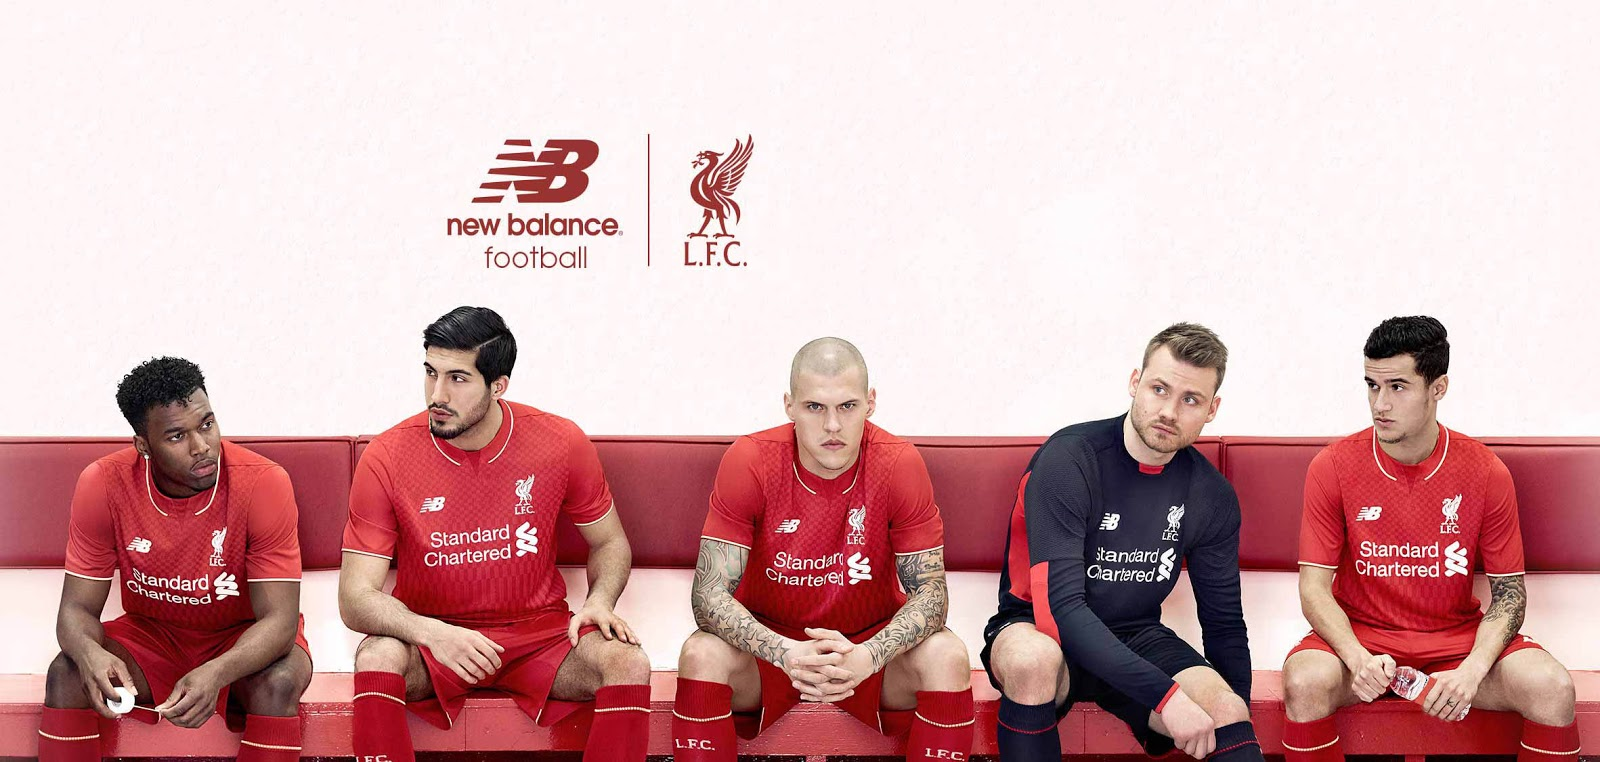 Liverpool s new home kit for the 2015-16 season released ff271116ca32a